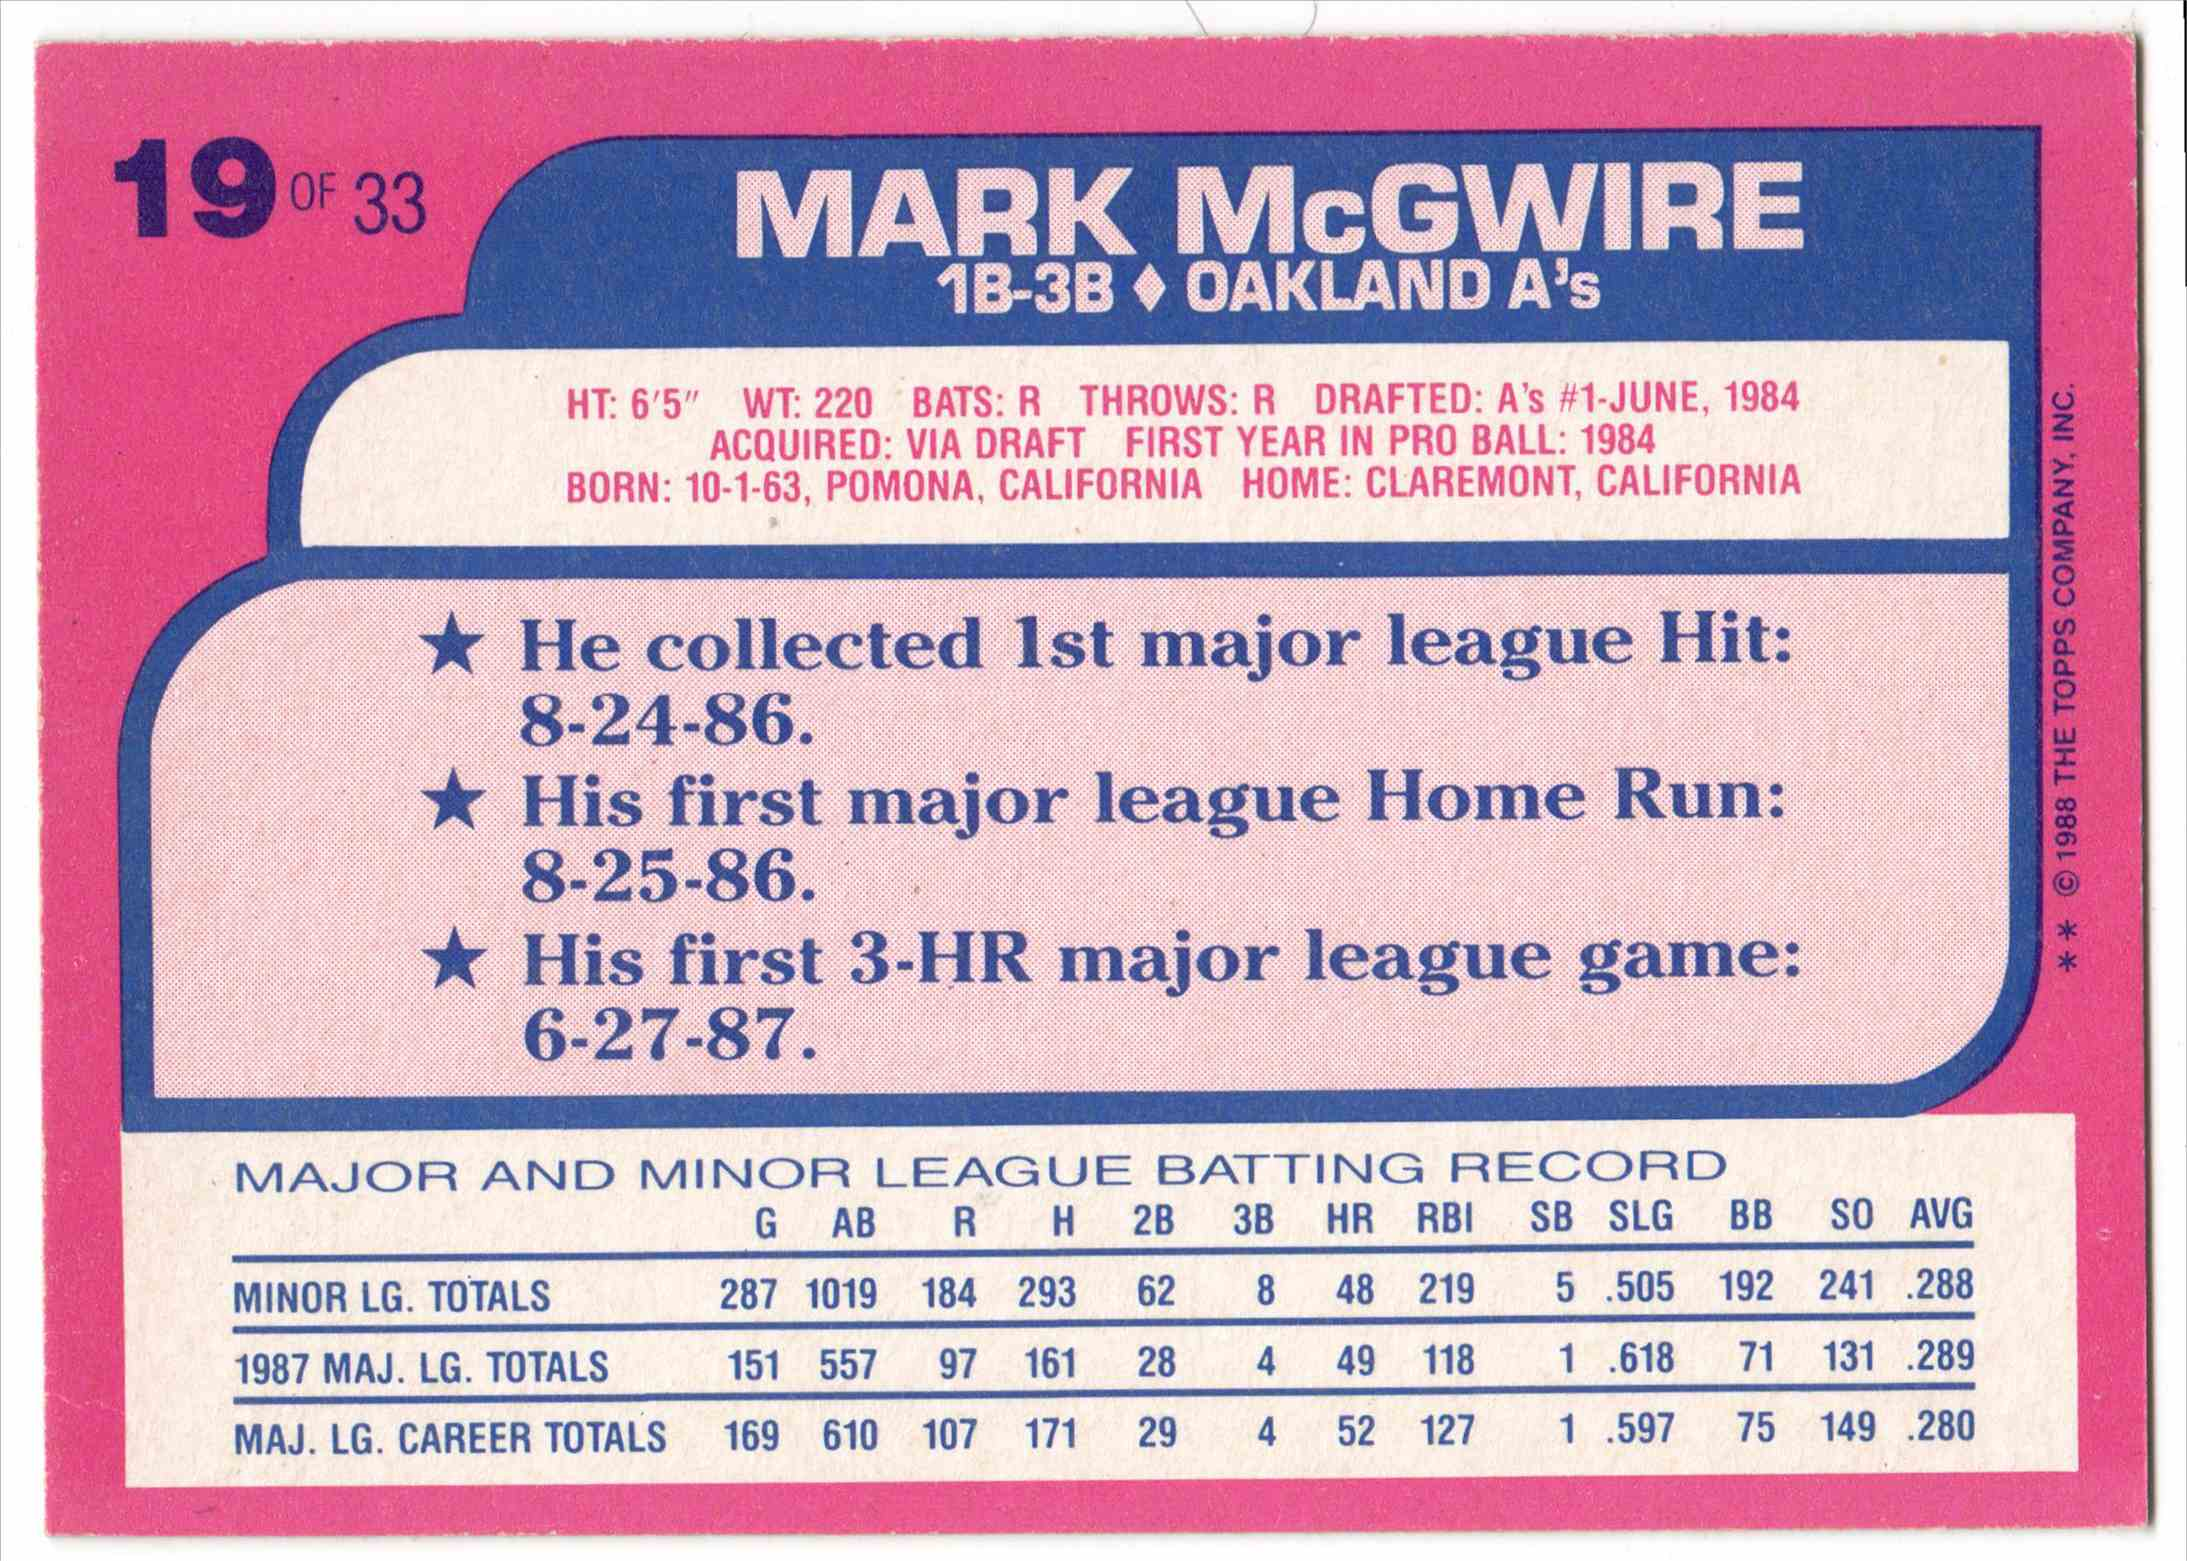 1988 Topps Toys R Us Rookies Mark McGwire #19 card back image